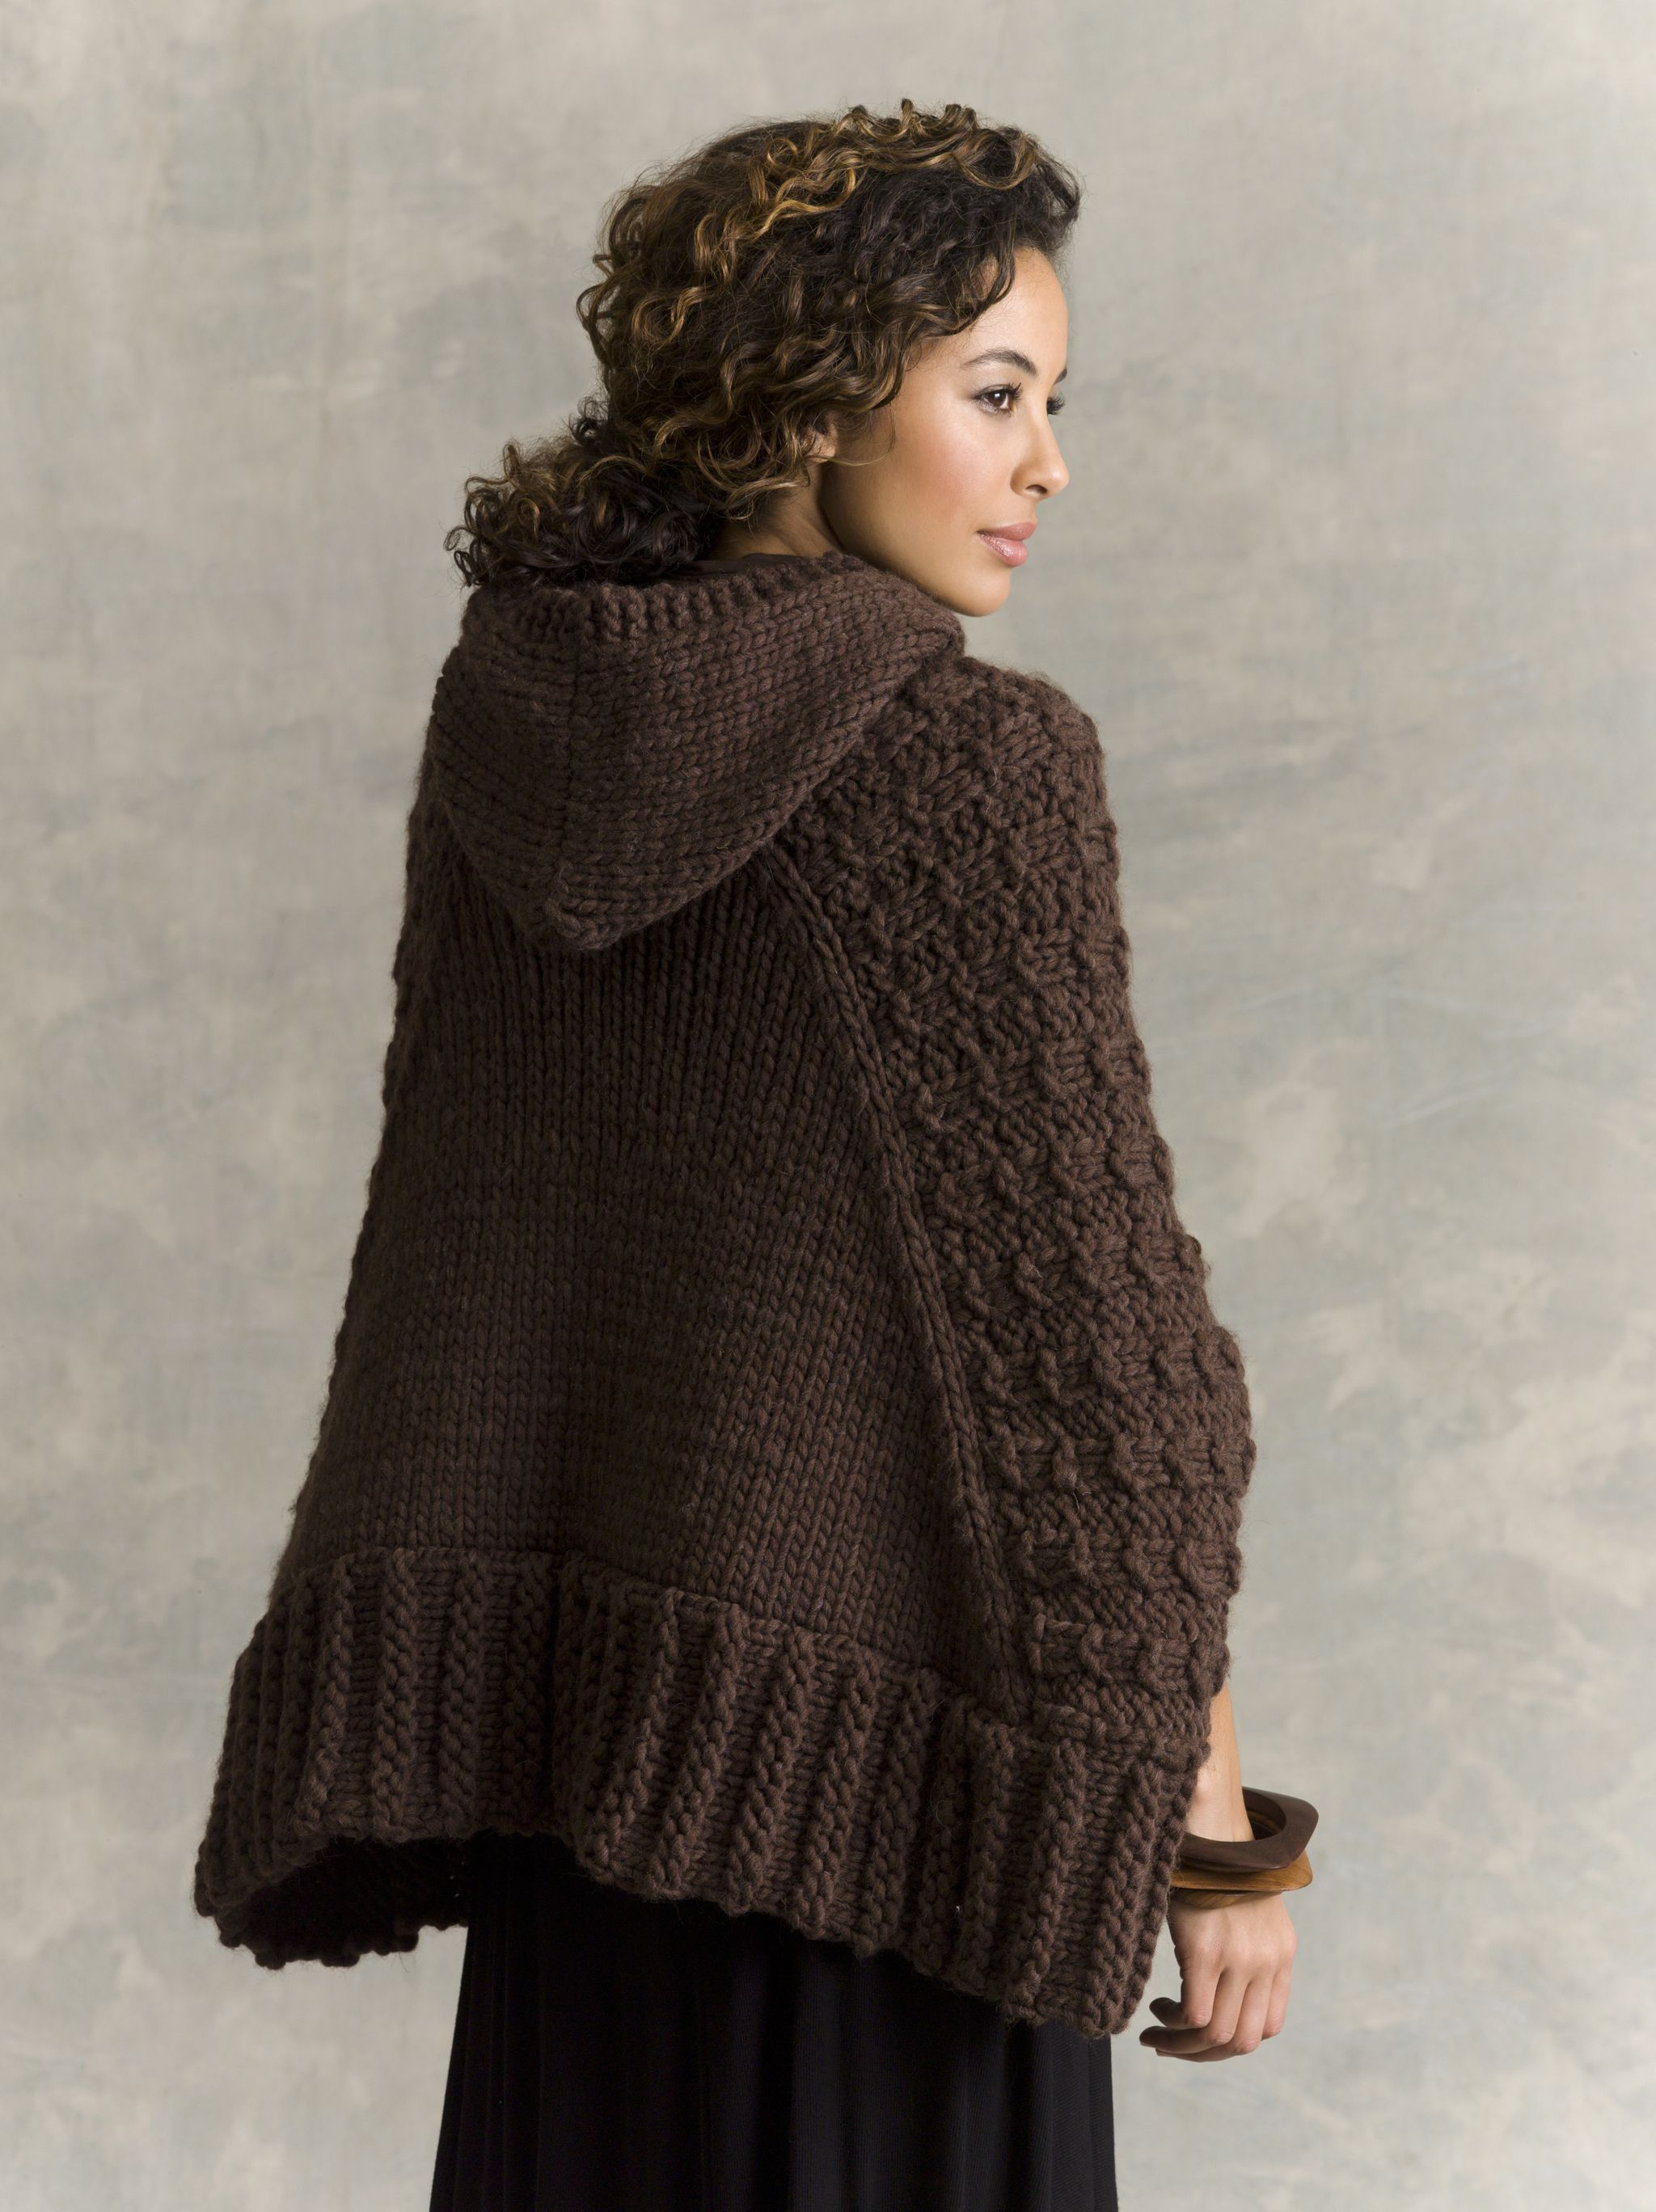 Dorable Knit Hooded Cape Pattern Collection - Sewing Pattern for ...